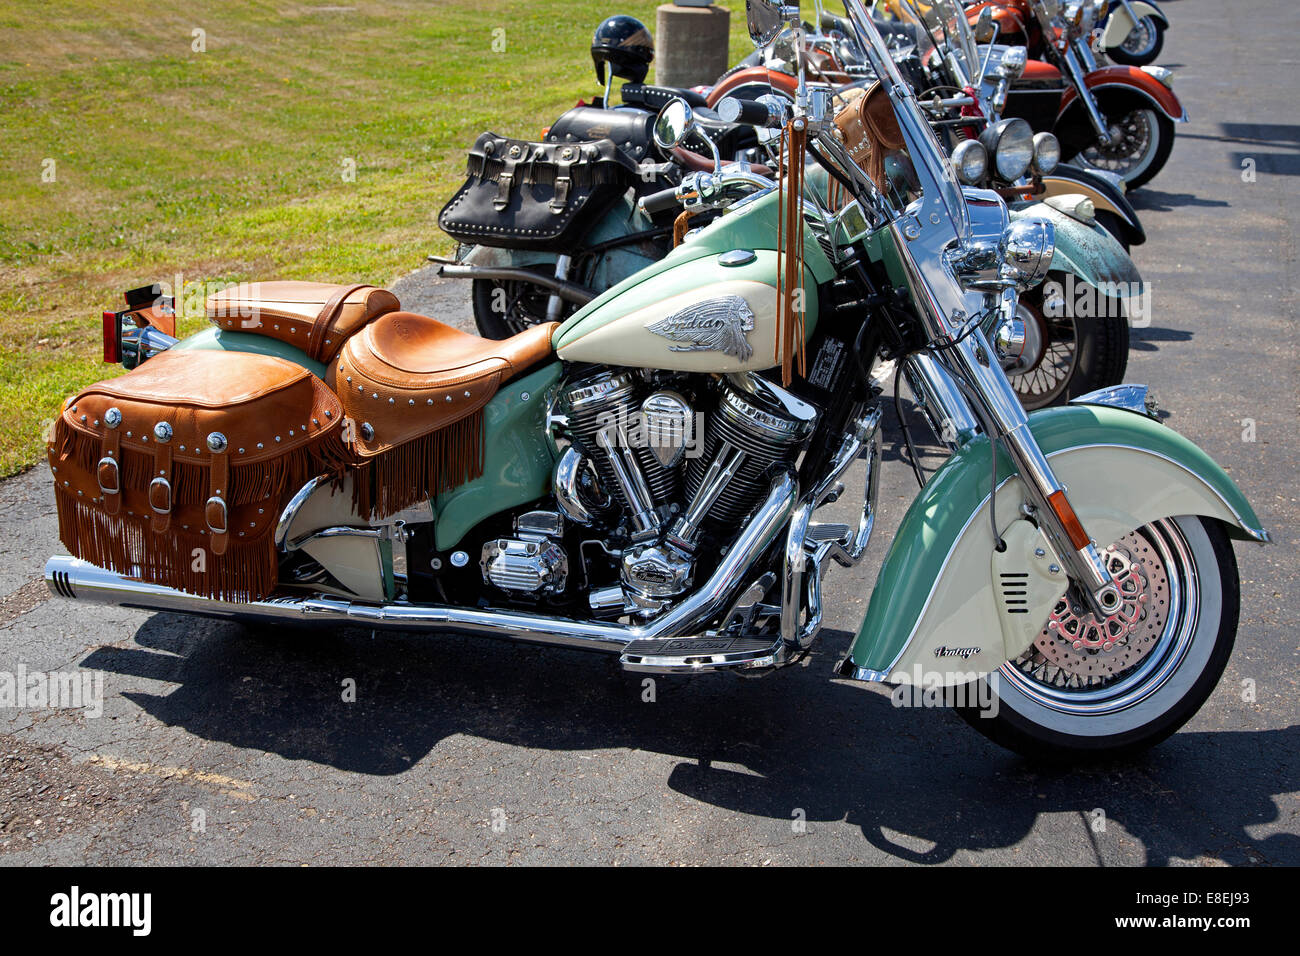 Indian Motorcycles at the Twin Cities dealership offering free rides to introduce the 2014 line. St Paul Minnesota - Stock Image